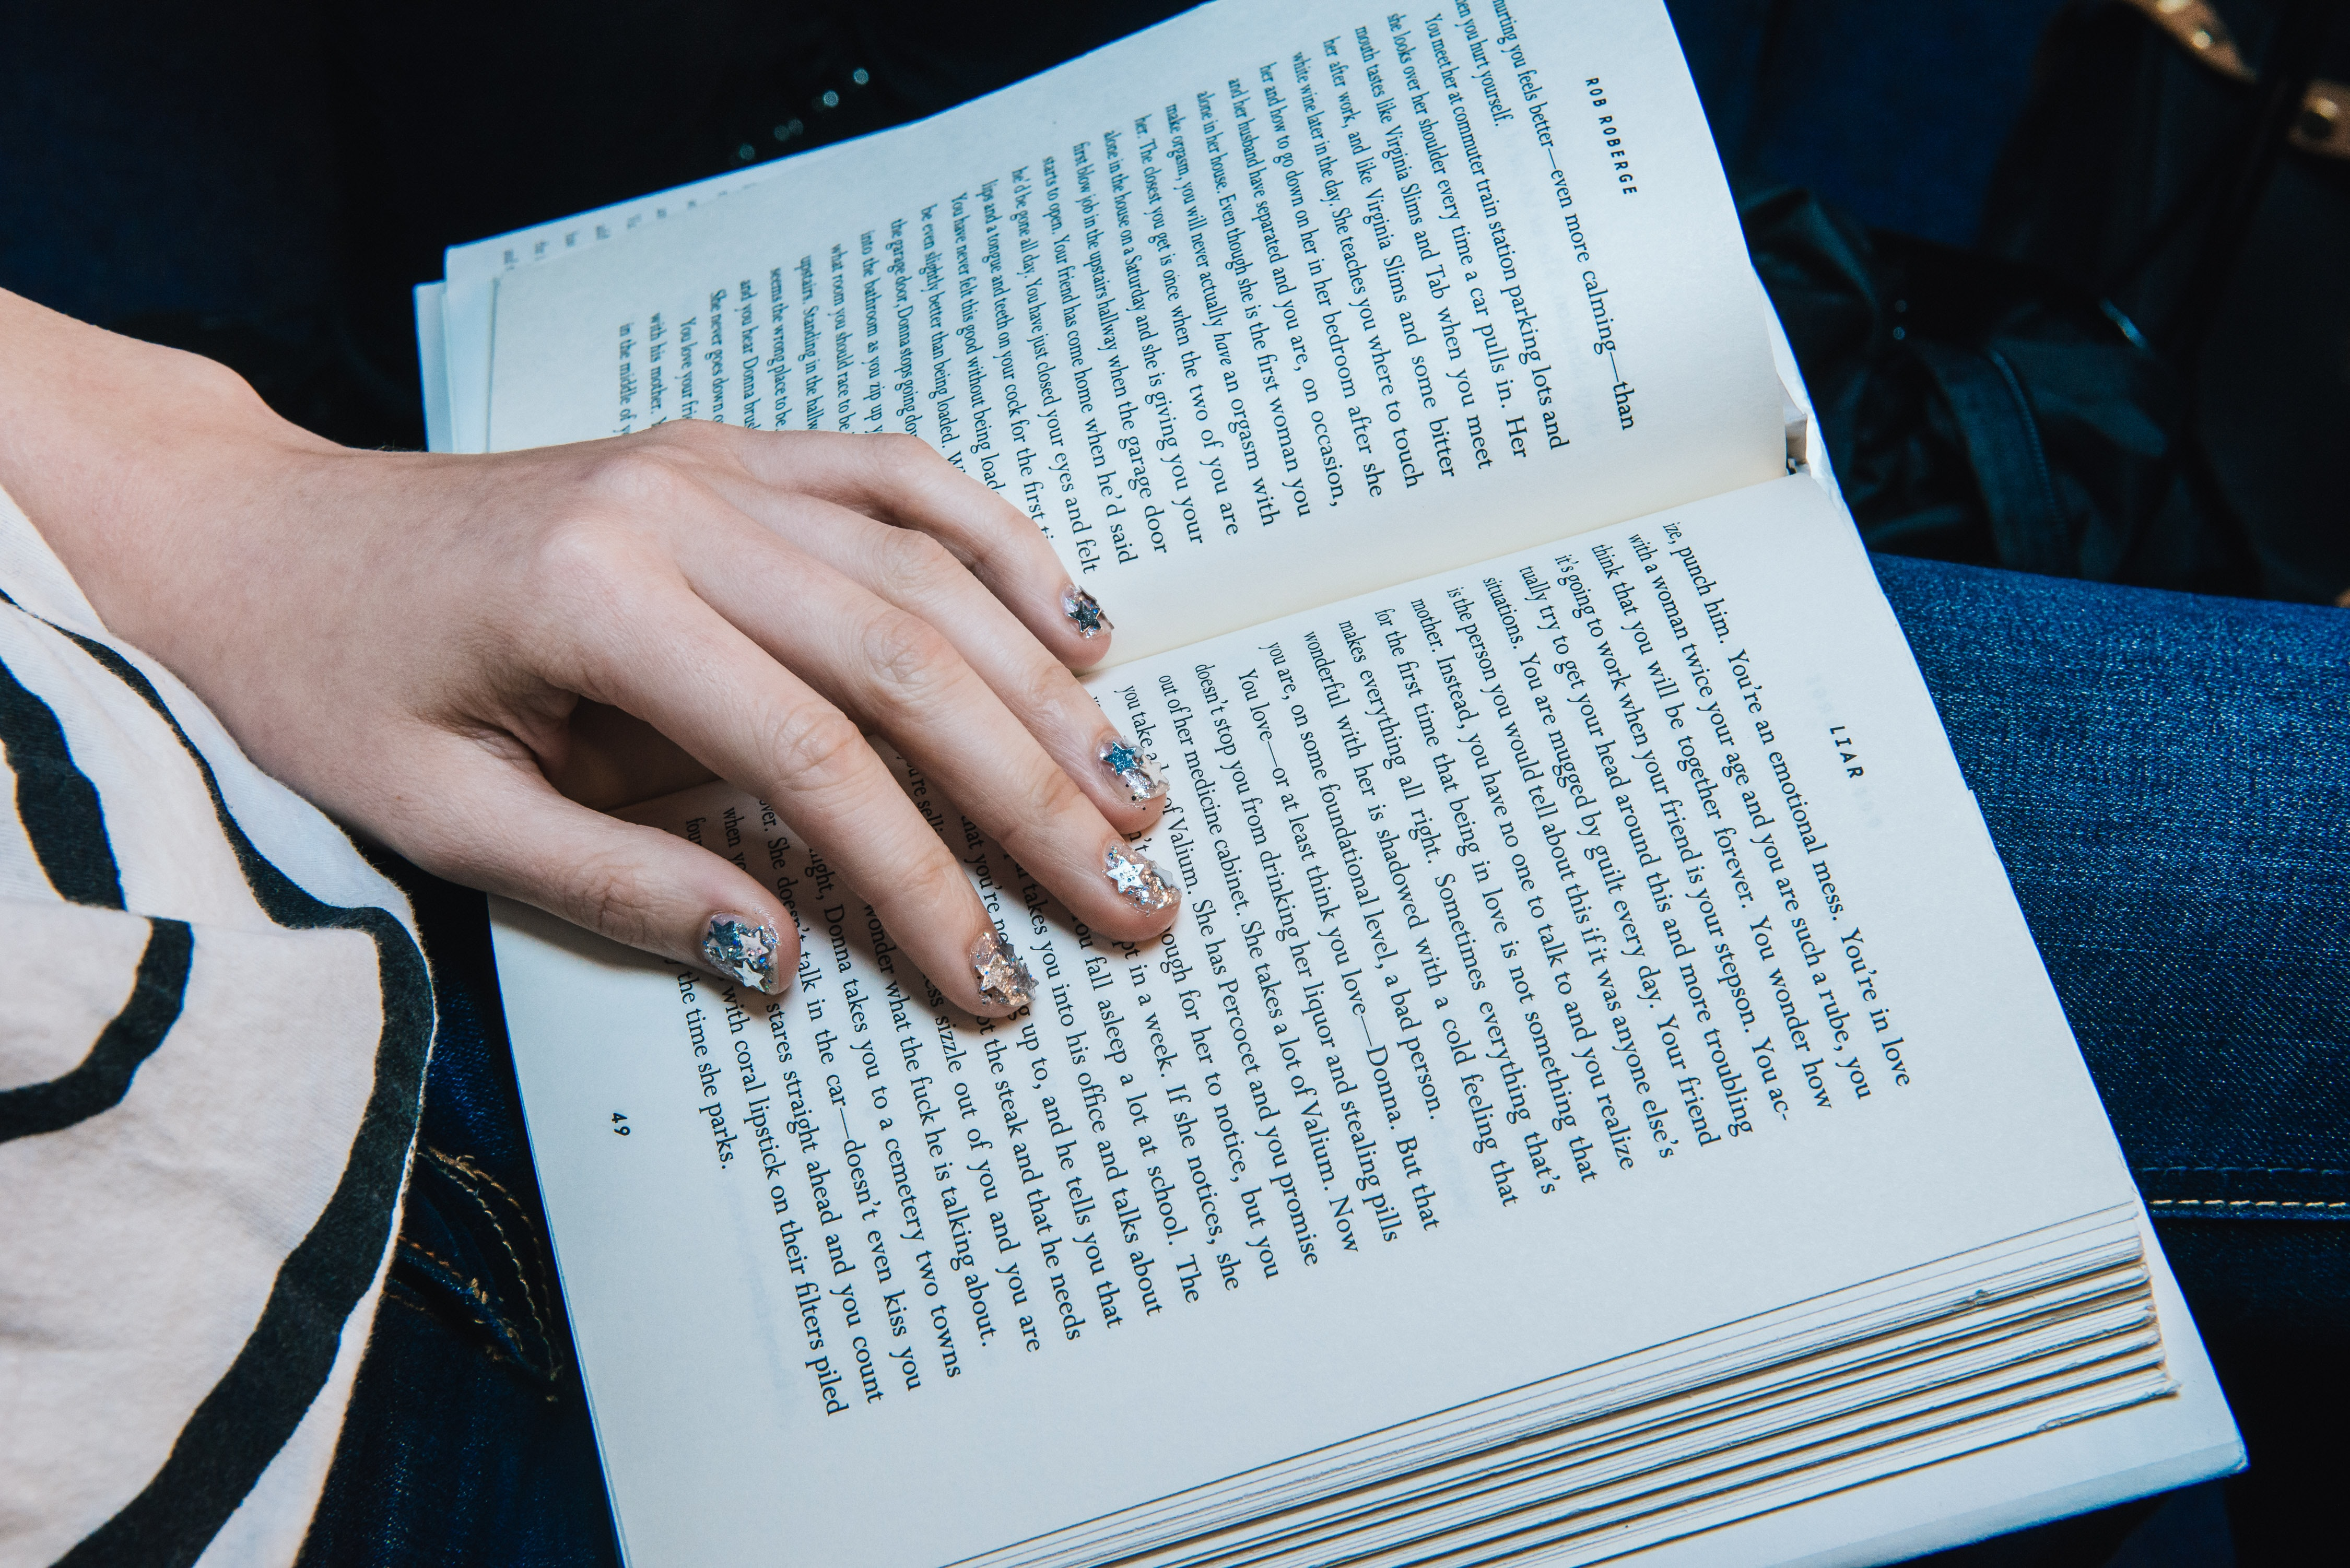 person reading on opened book